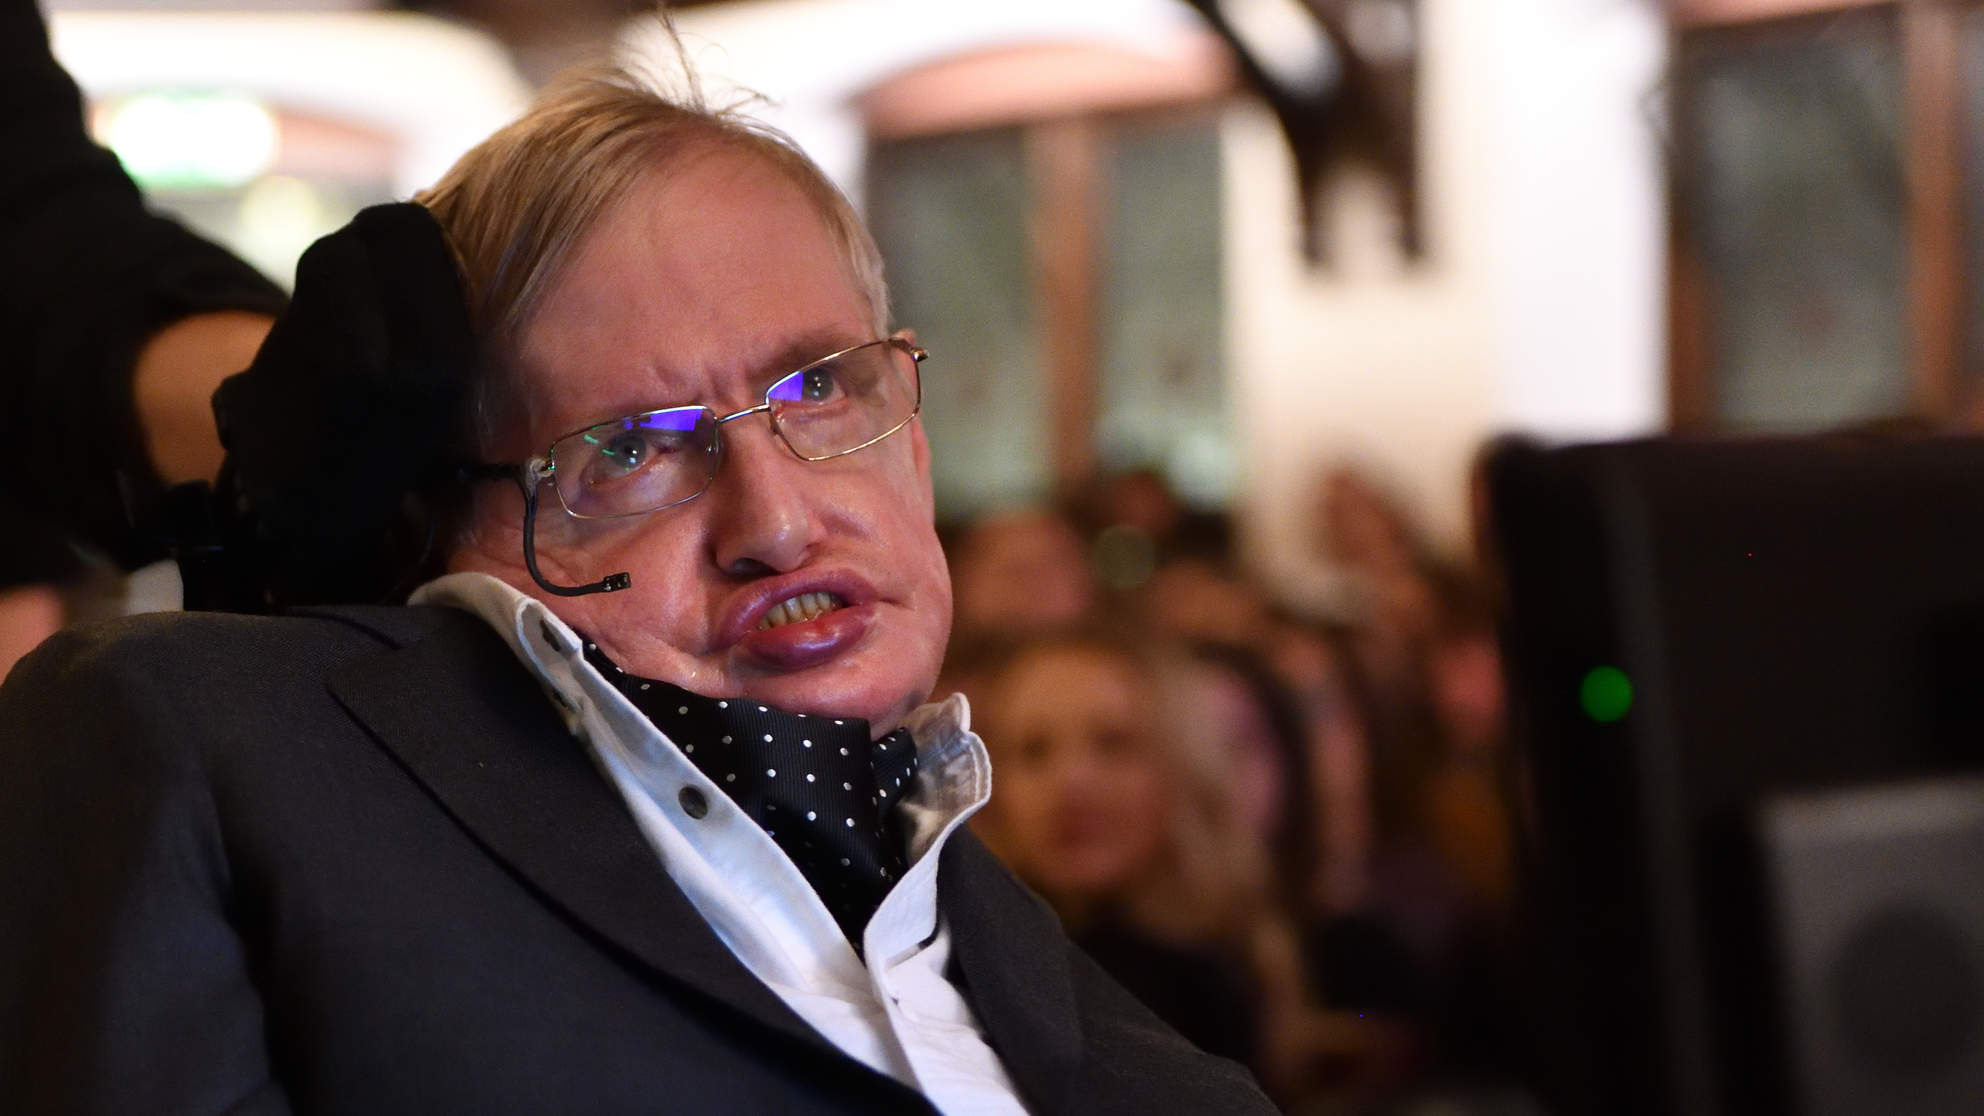 How Stephen Hawking Was Able to Live for So Long With ALS